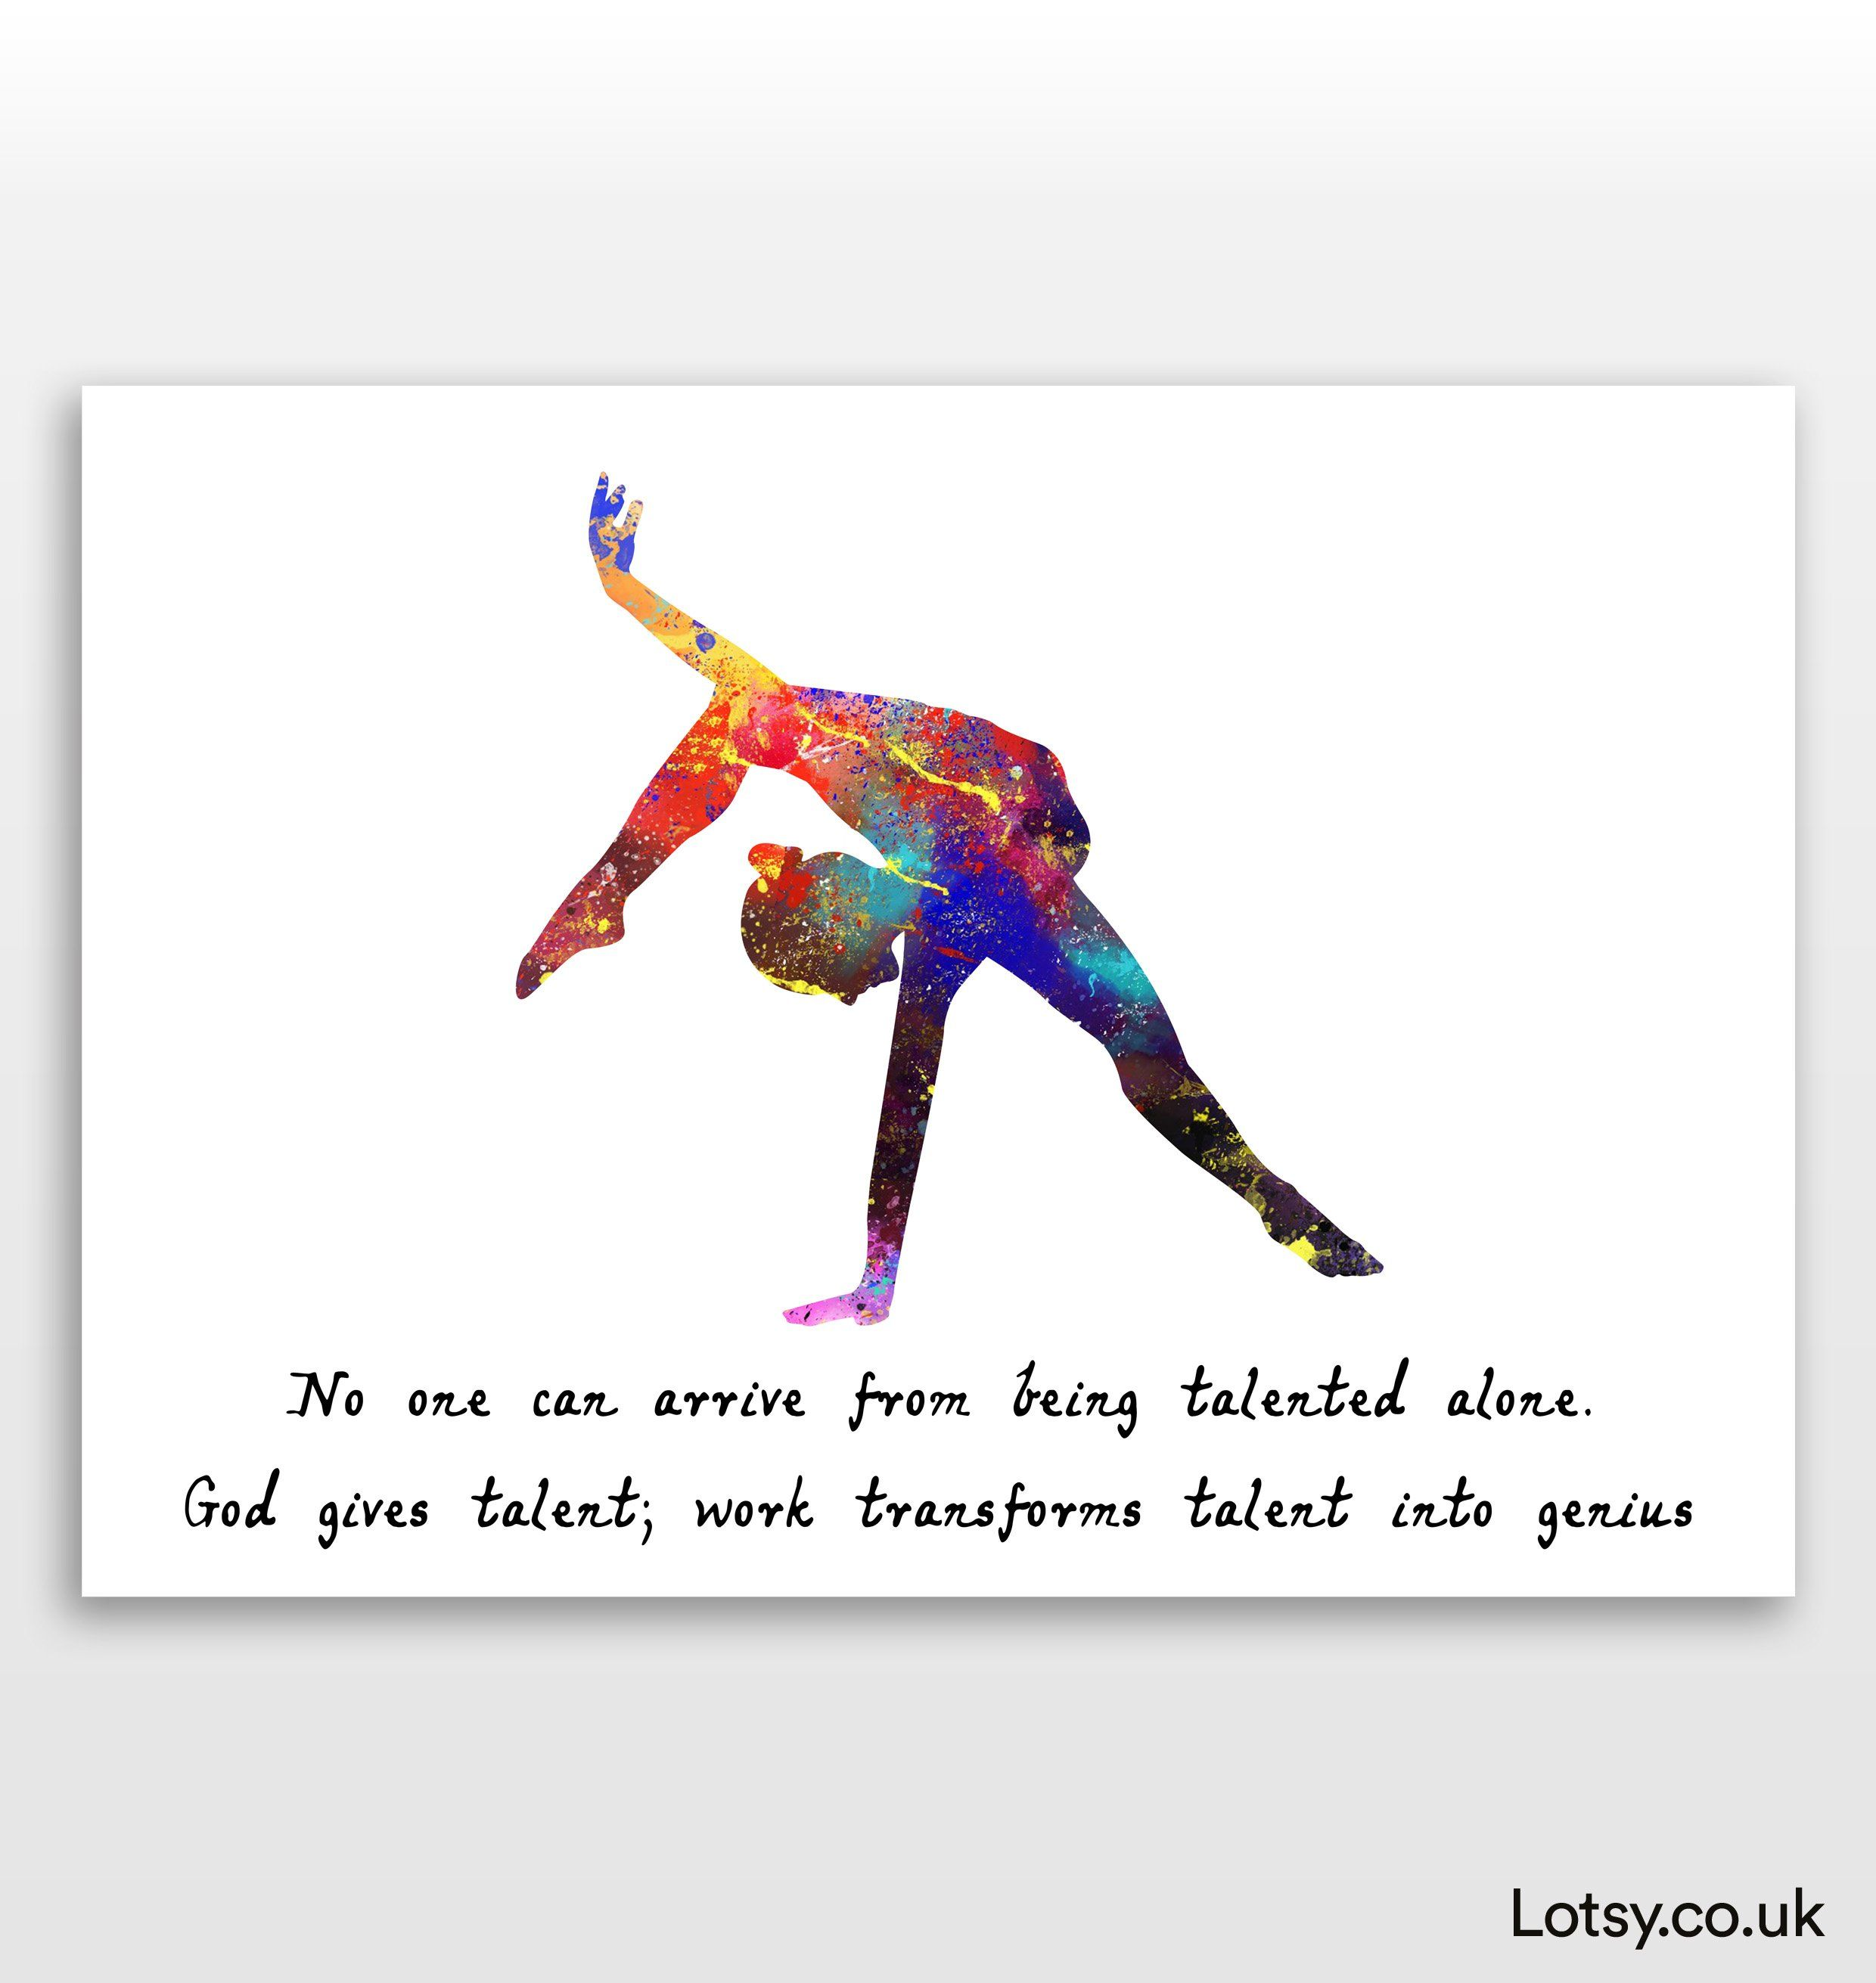 Ballet Quote - No one can arrive from being talented alone. God gives talent - A0 - (841mm x 1189mm) (33.1inch x 46.8inch)